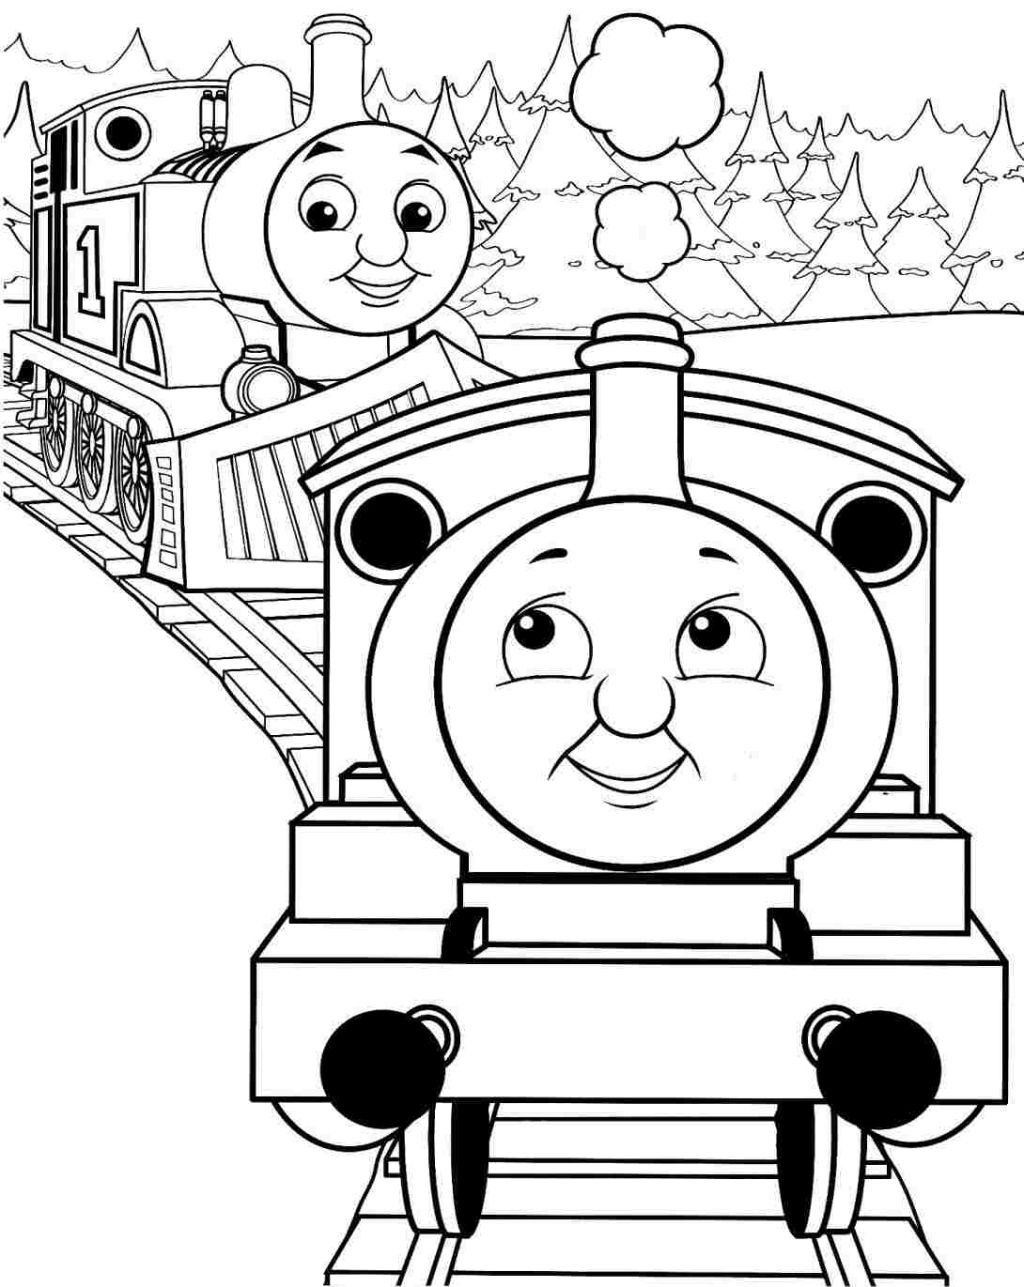 3 Train Coloring Pages For Toddlers In 2020 Varitys